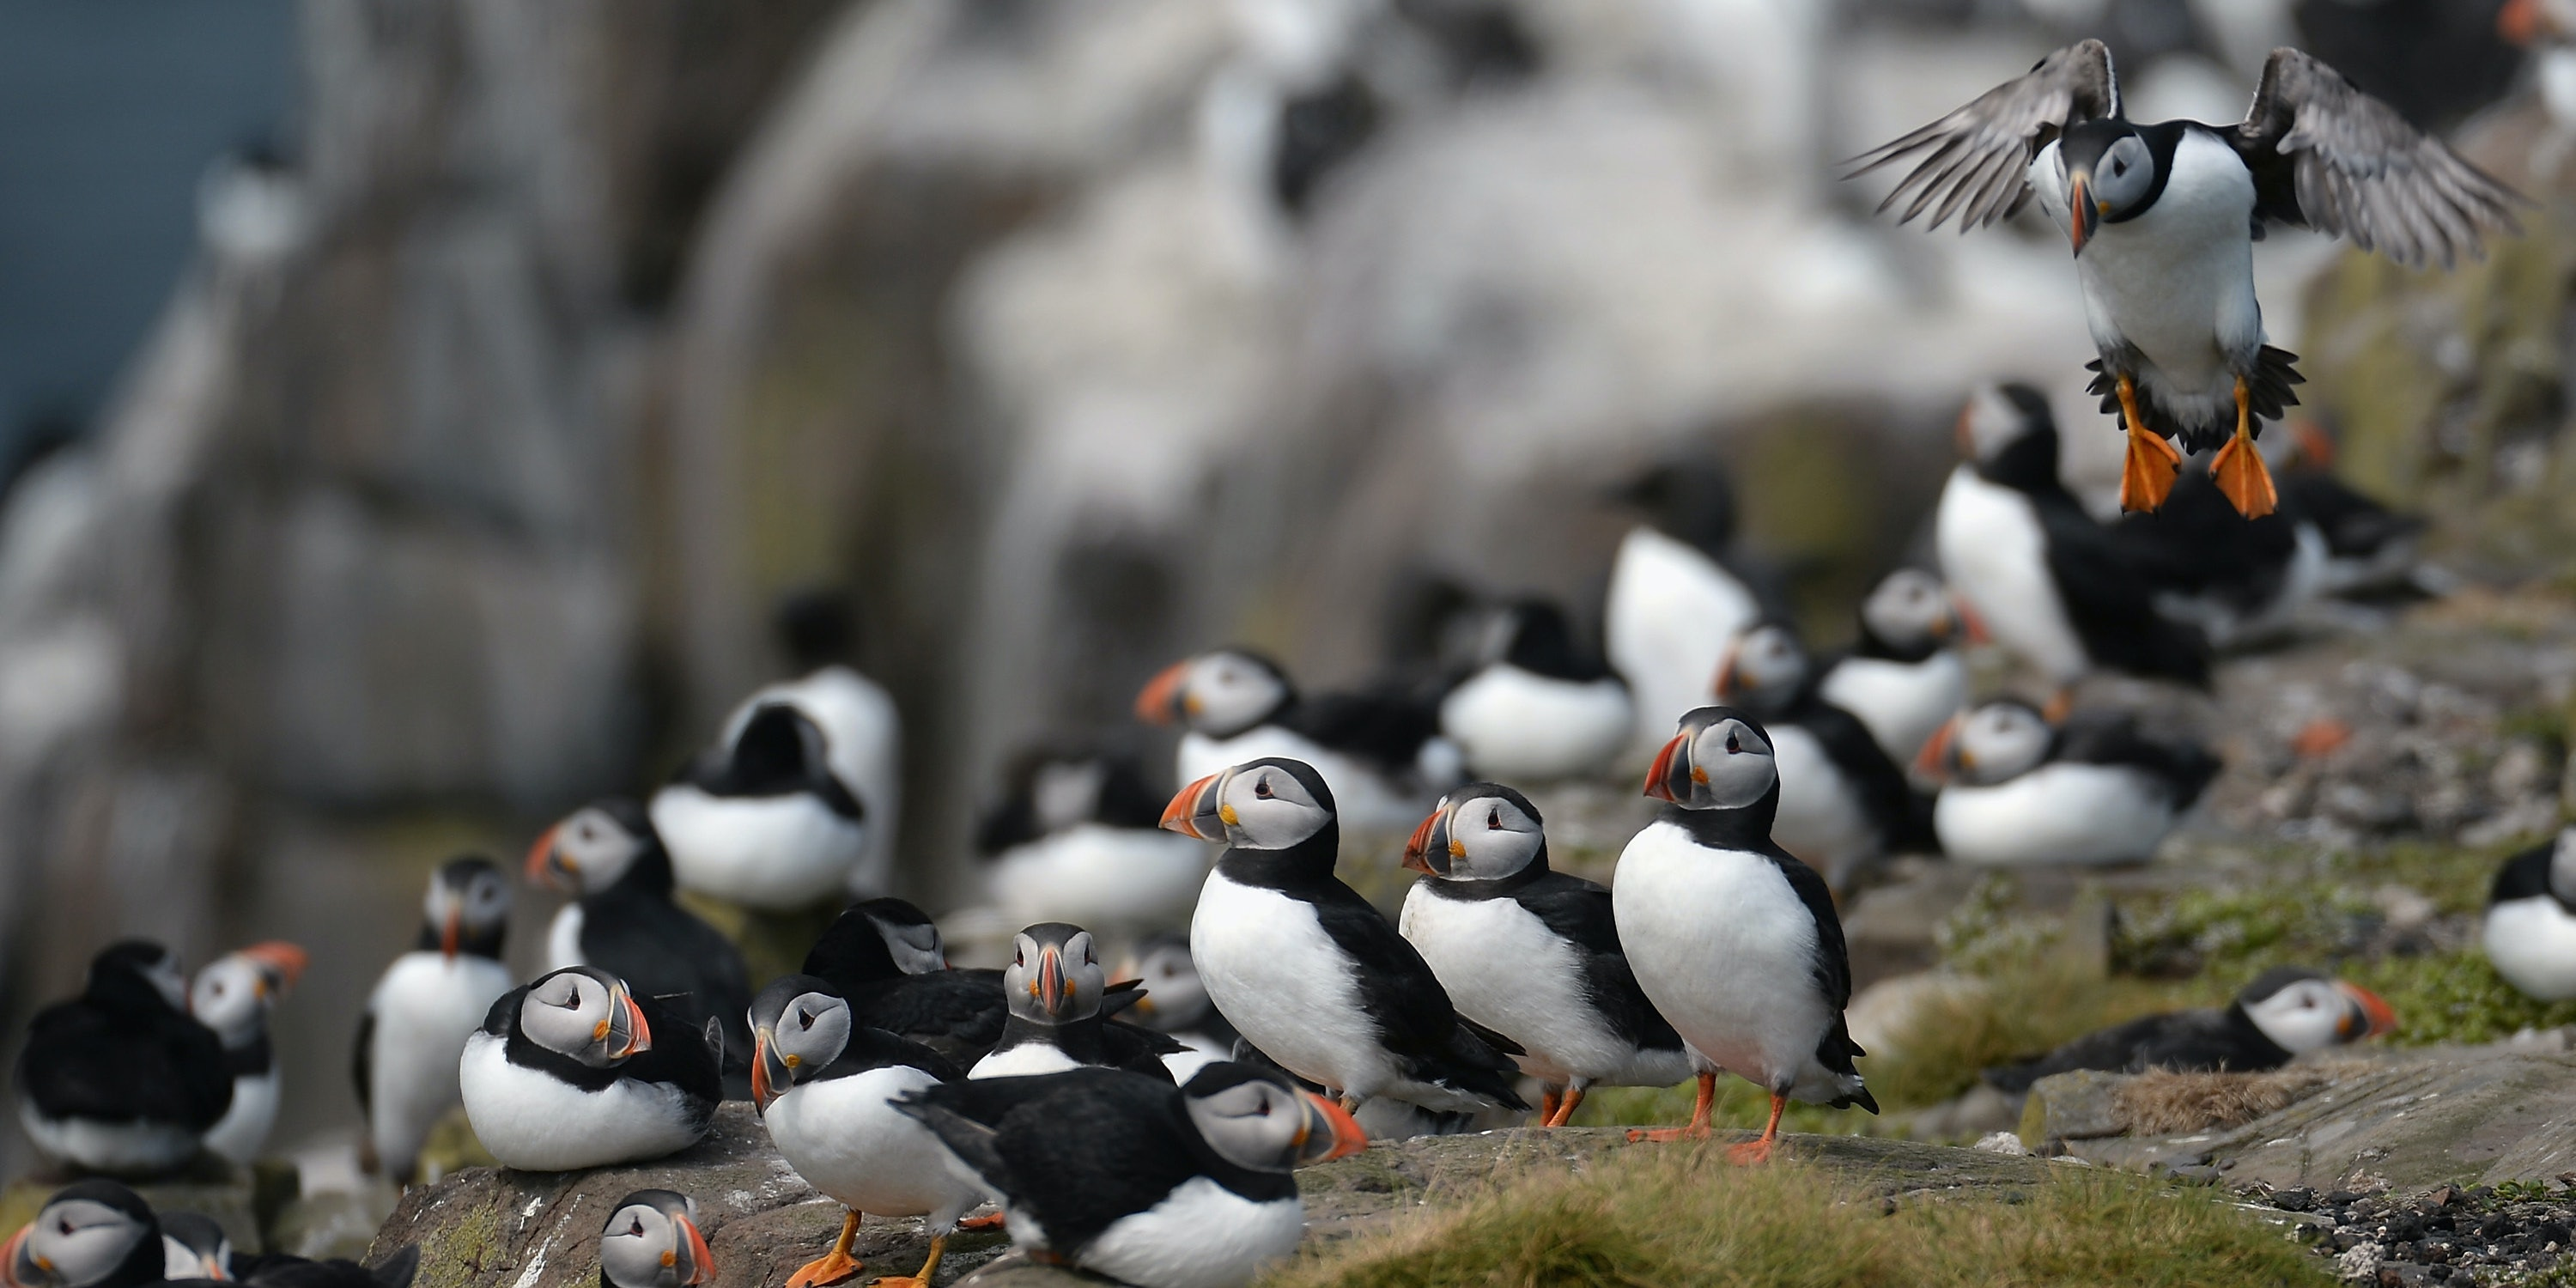 Puffins return to their summer breeding grounds on the Farne Islands as National Trust rangers carry out a Puffin census on May 16, 2013 in the Farne Islands, England. A census is carried out every five years with the last one in 2008 recording 36,500 pairs of puffins. The Farne Islands, offer good protection for the birds to nest, providing excellent sources of food, and few ground predators, despite this rangers fear that the extreme winter could impact on breeding numbers.